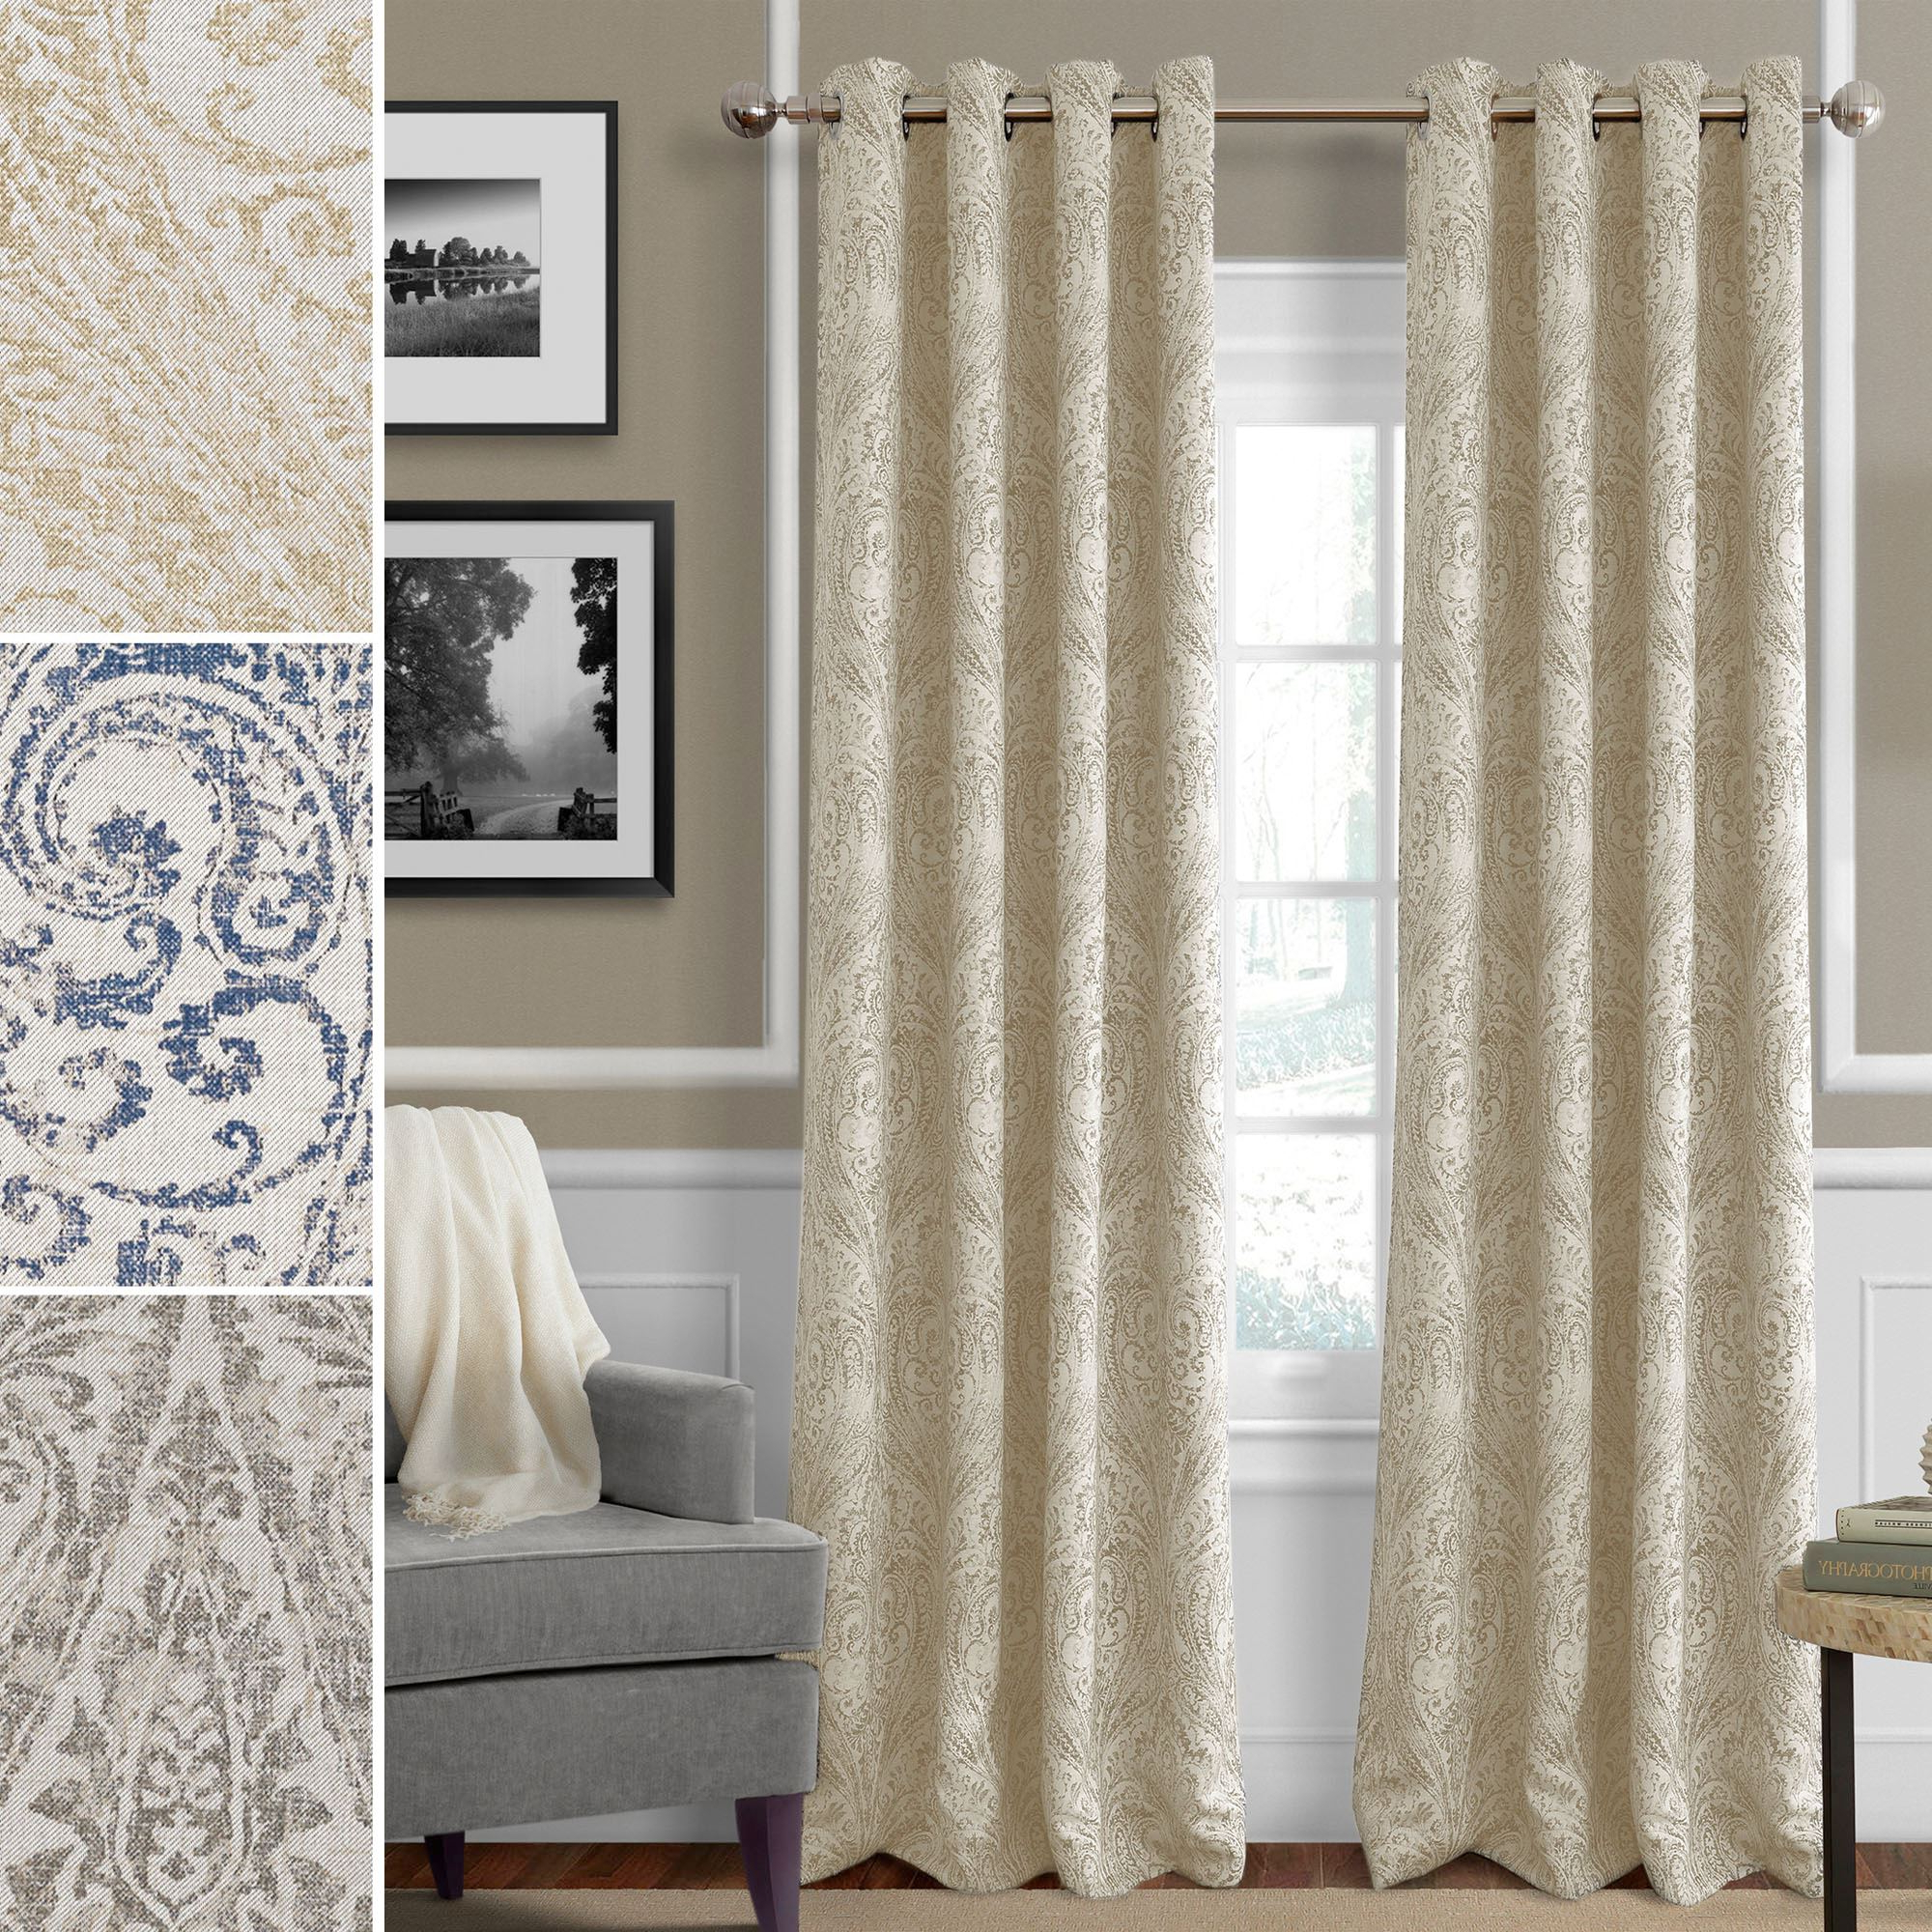 Best And Newest Blackout Grommet Curtain Panels Regarding Julianne Room Darkening Grommet Curtain Panels (View 2 of 20)